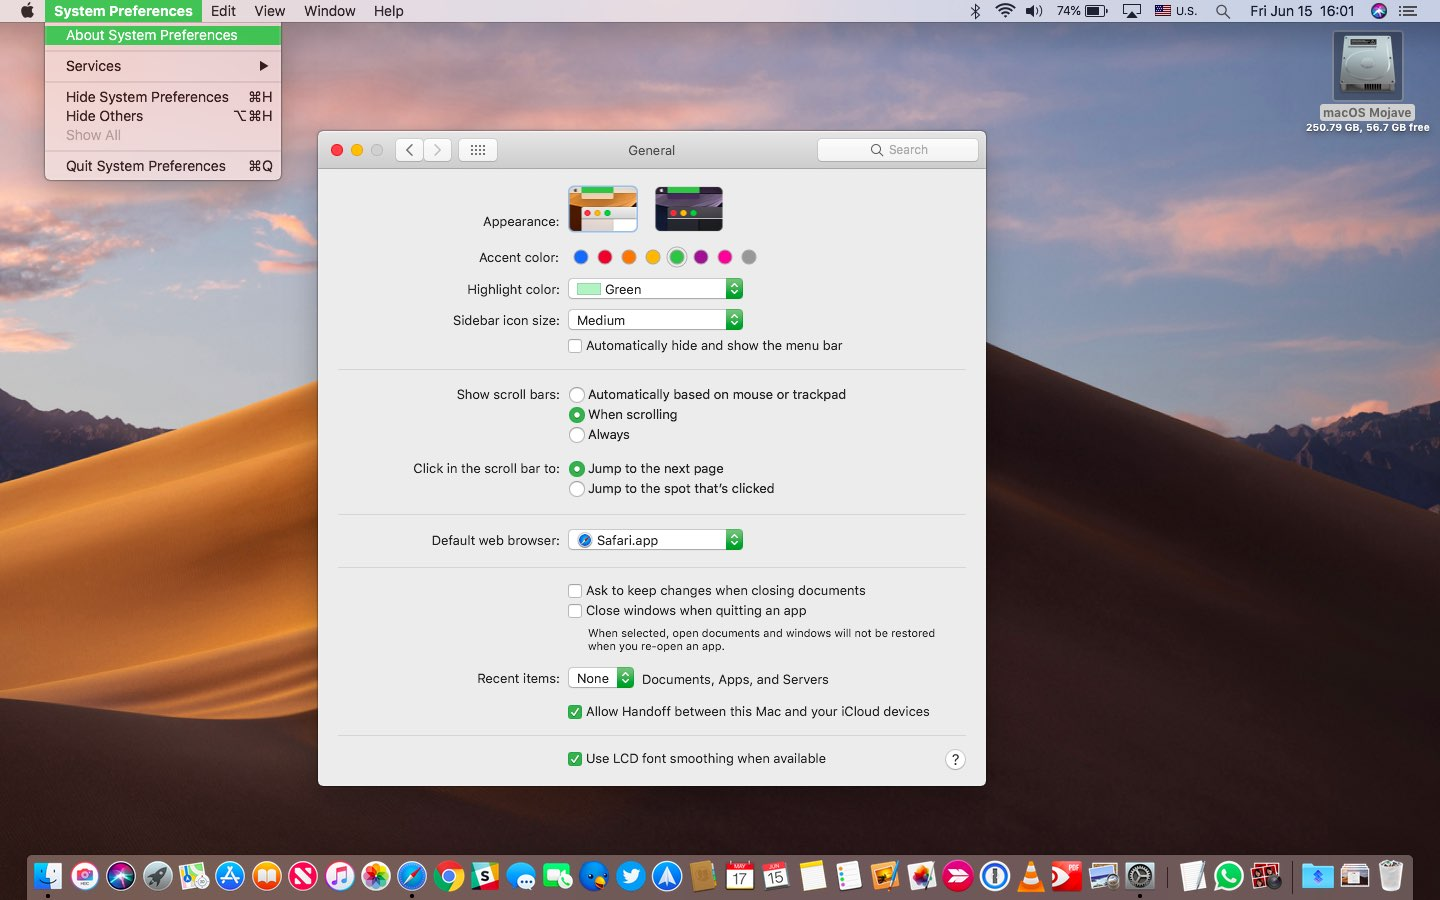 macOS Mojave Light Mode with the green accent and highlight color